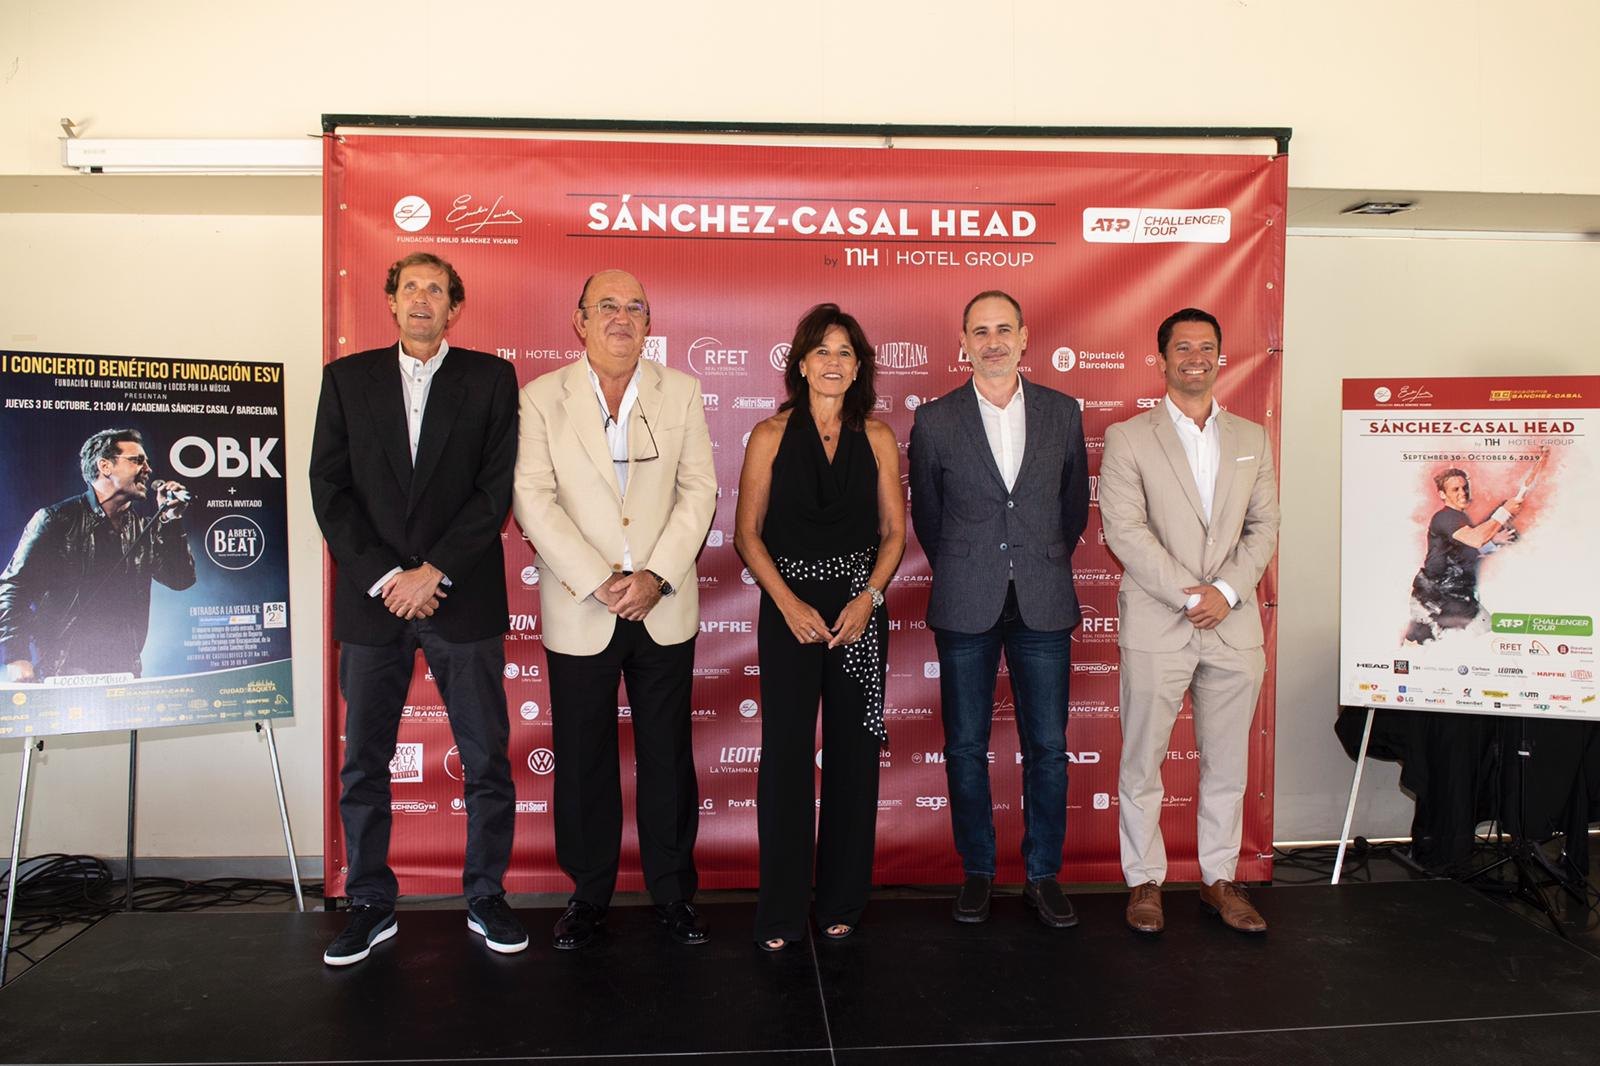 Image for II SÁNCHEZ-CASAL HEAD BY NH HOTEL GROUP, DEL ATP CHALLENGER TOUR ORGANIZADO POR FUNDACIÓNESV